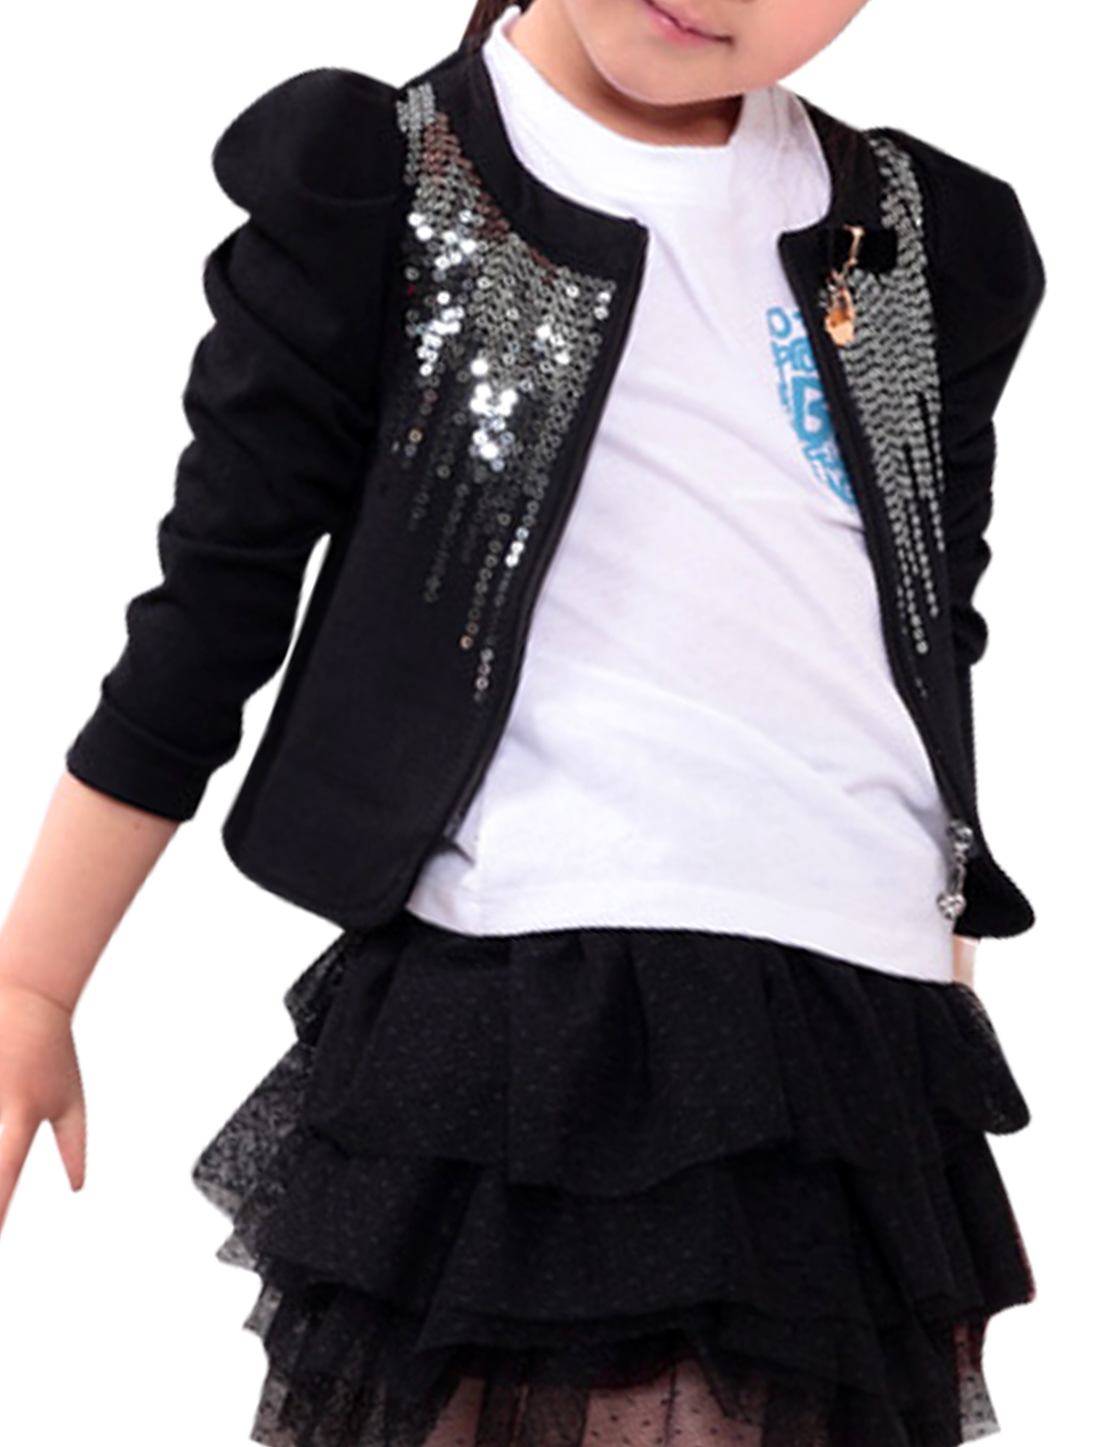 Chic Zip-Up Closure Front Design Long Puff Sleeve Black Coat for Girl 6